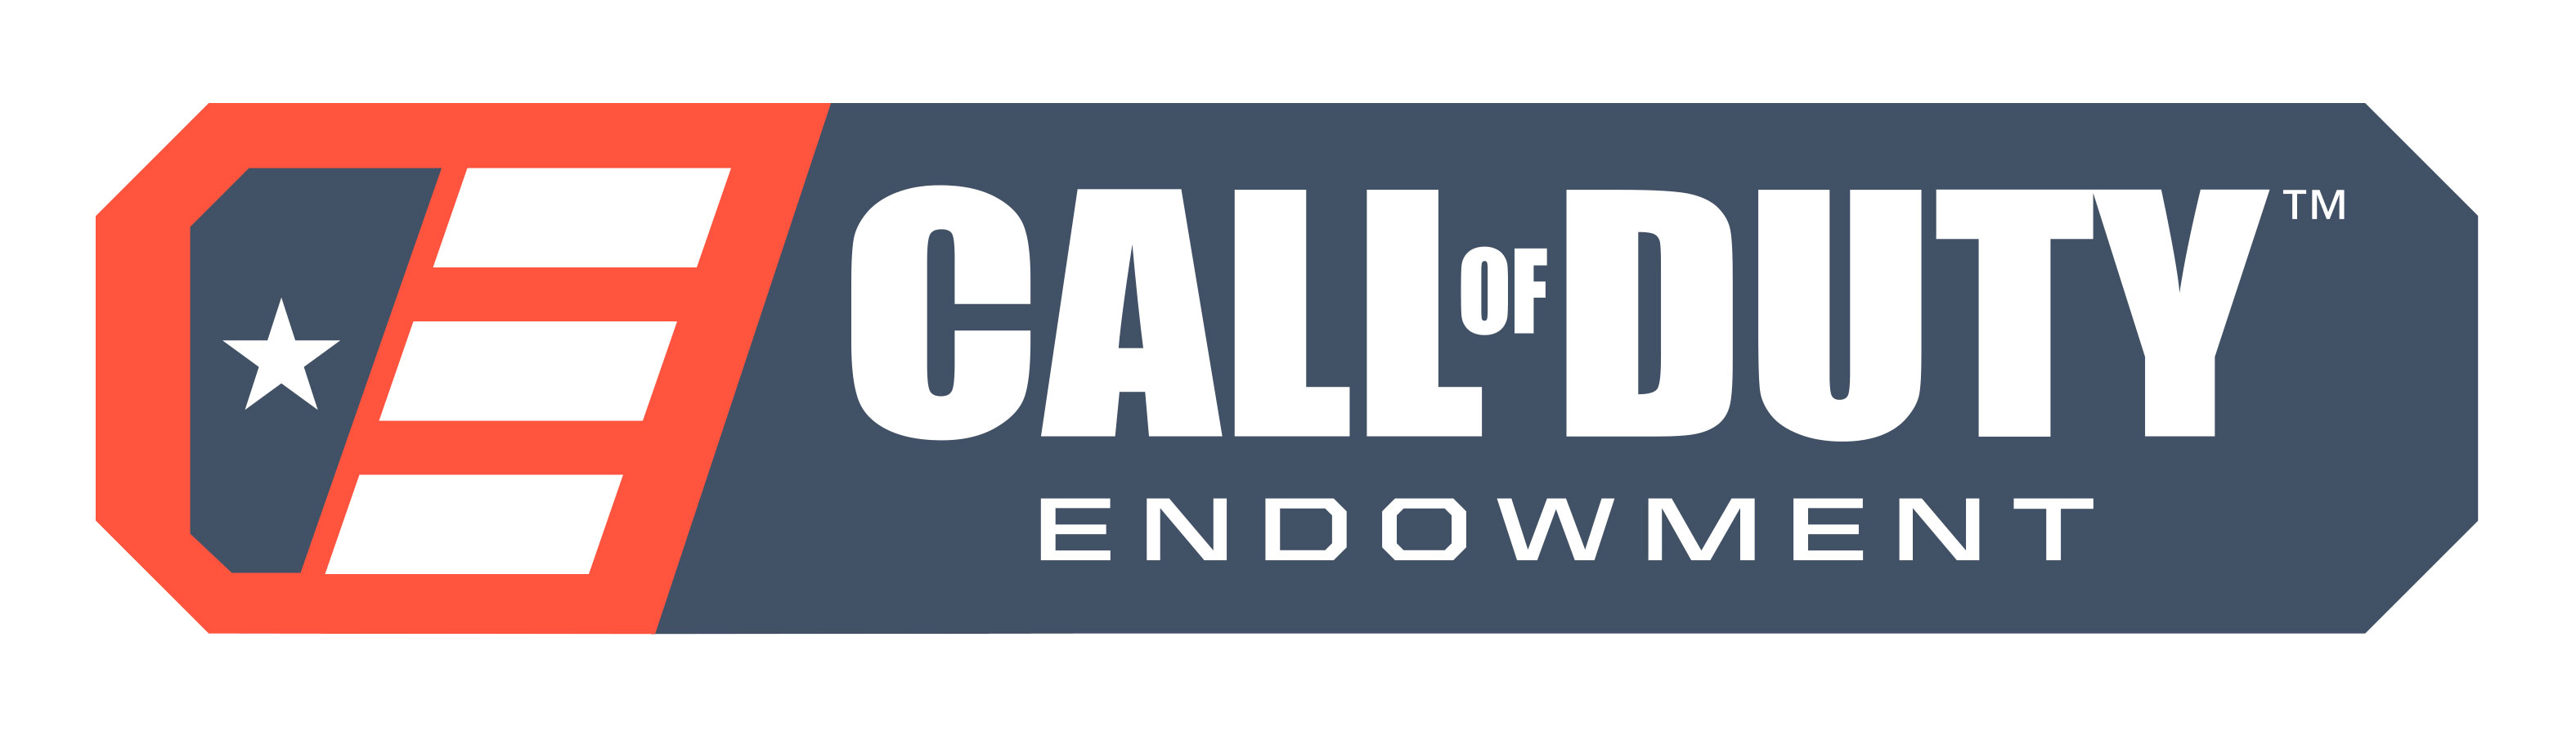 This Week in Call of Duty® - March 23 - Image 4